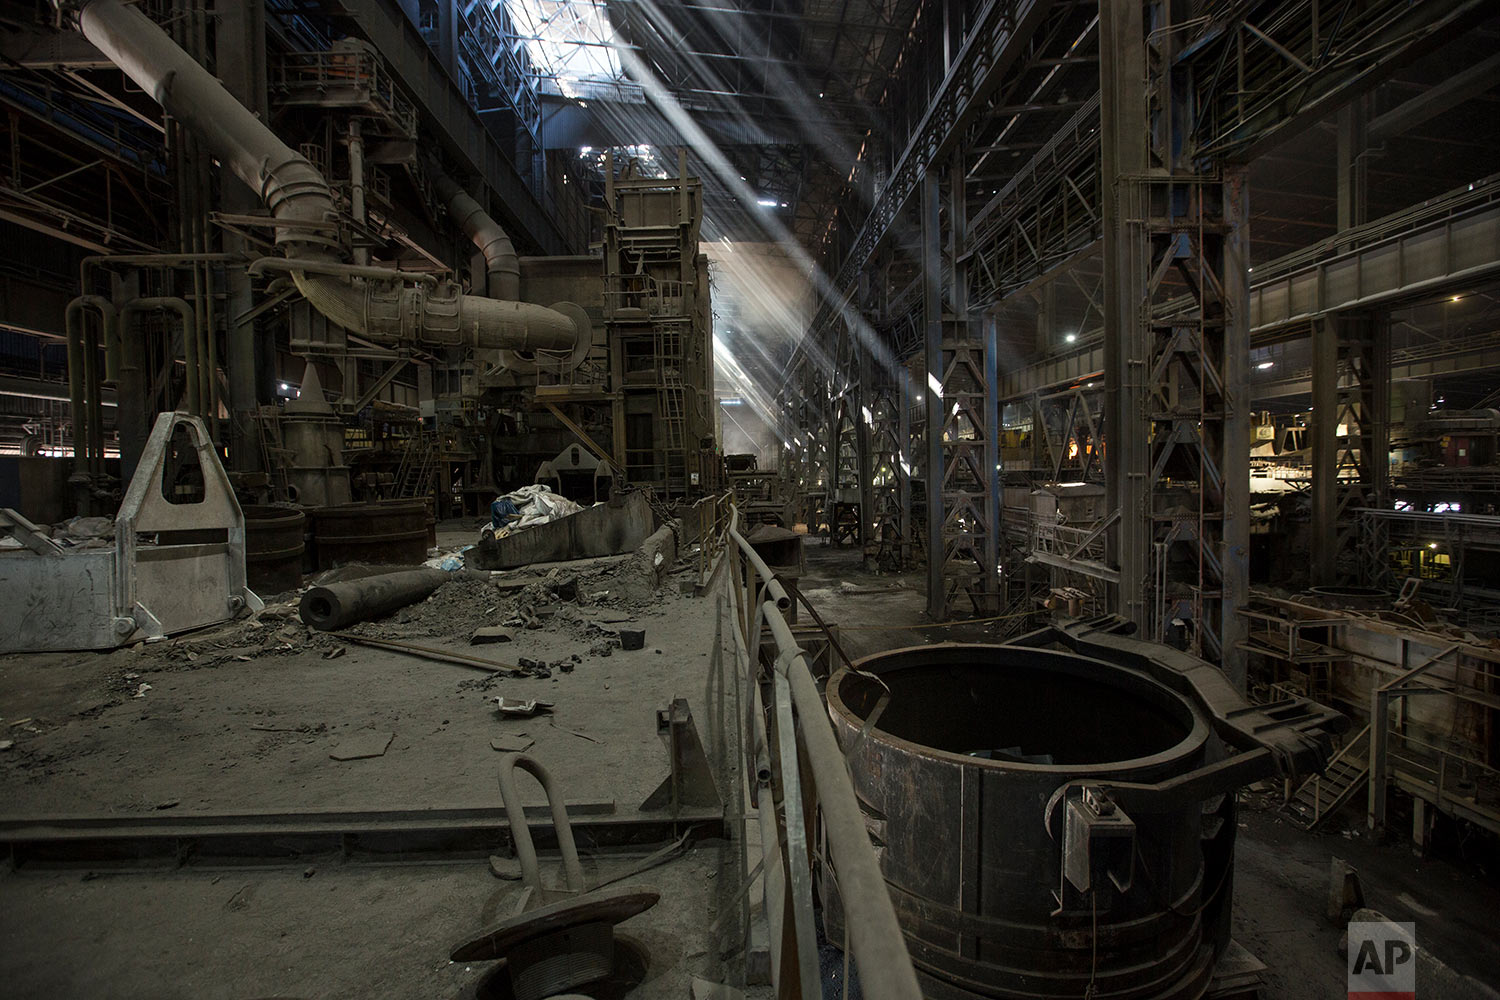 In this Nov. 7, 2017 photo, light rays enter through the windows of Sidor's Palanquilla steel plant, in Ciudad Guayana, Bolivar state, Venezuela. In 2008 President Hugo Chavez began putting these factories, then owned by conglomerates from Japan and Argentina, under the state's control. Output steadily eroded even before the oil price crash. (AP Photo/Rodrigo Abd)